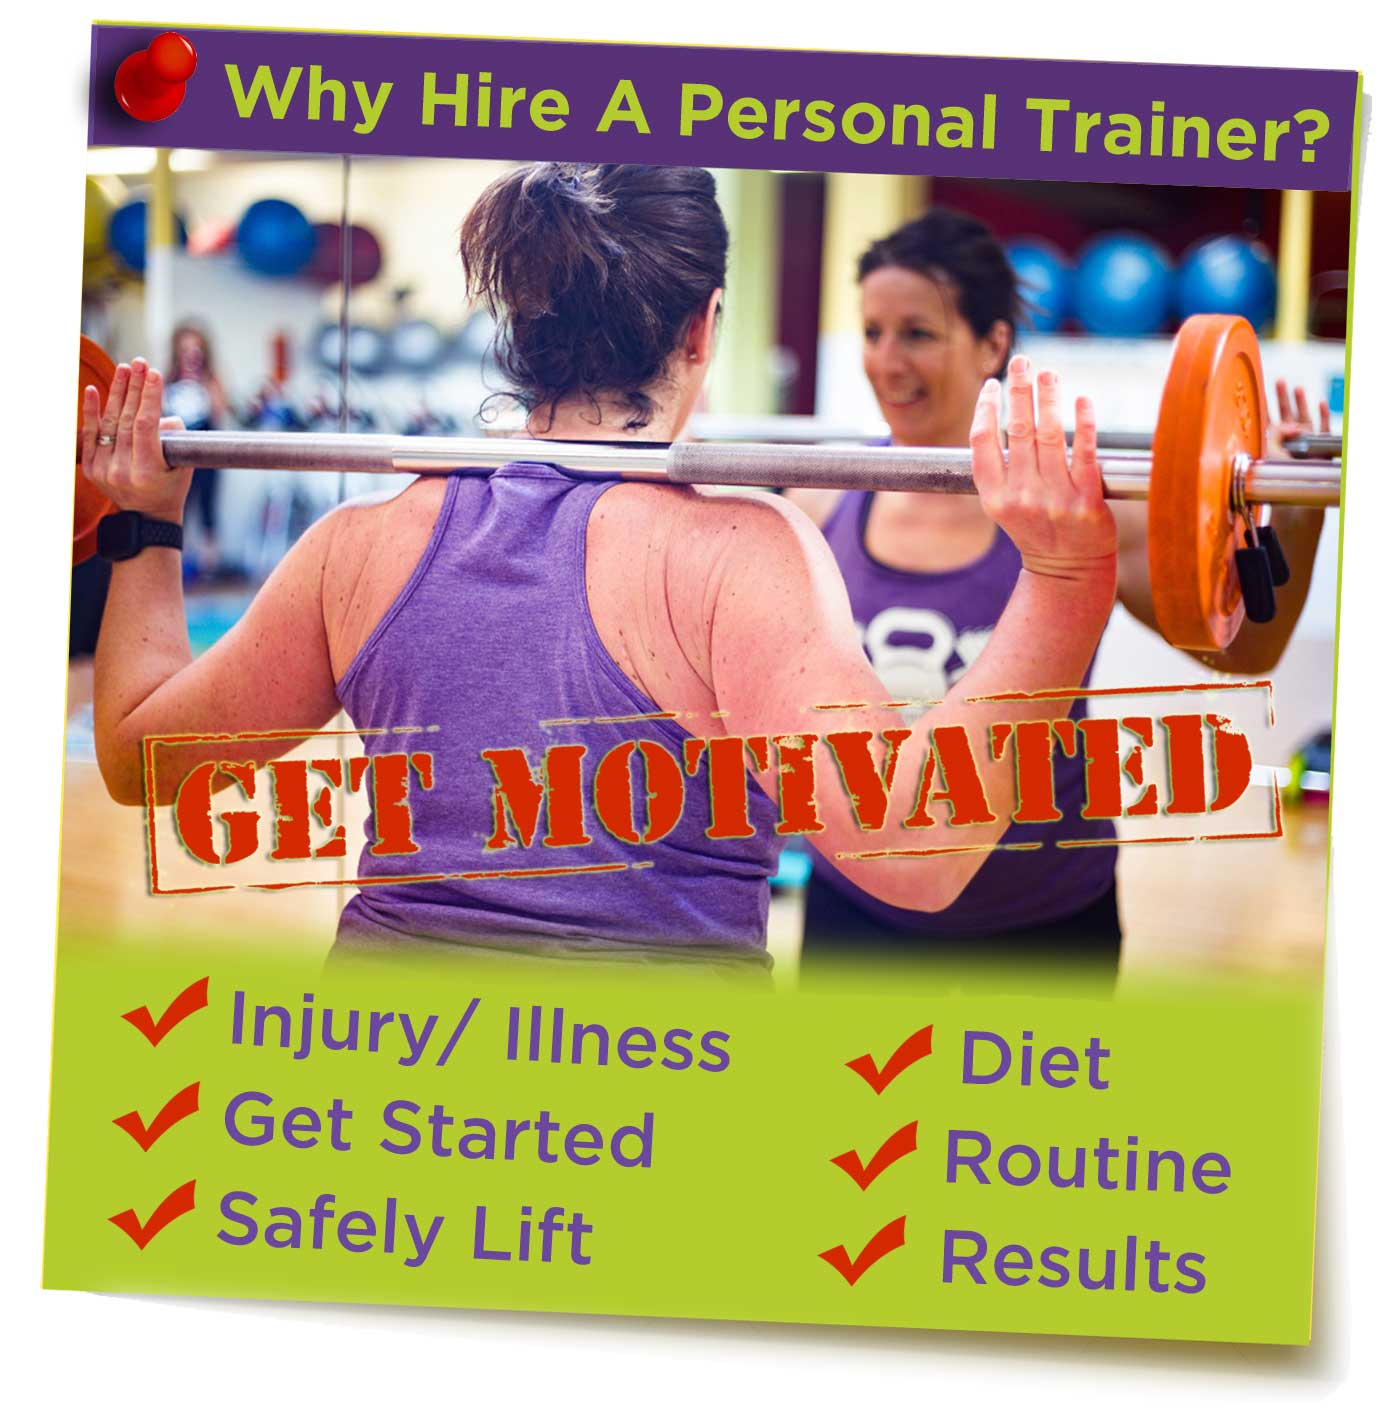 Hire a Personal Trainer Today!